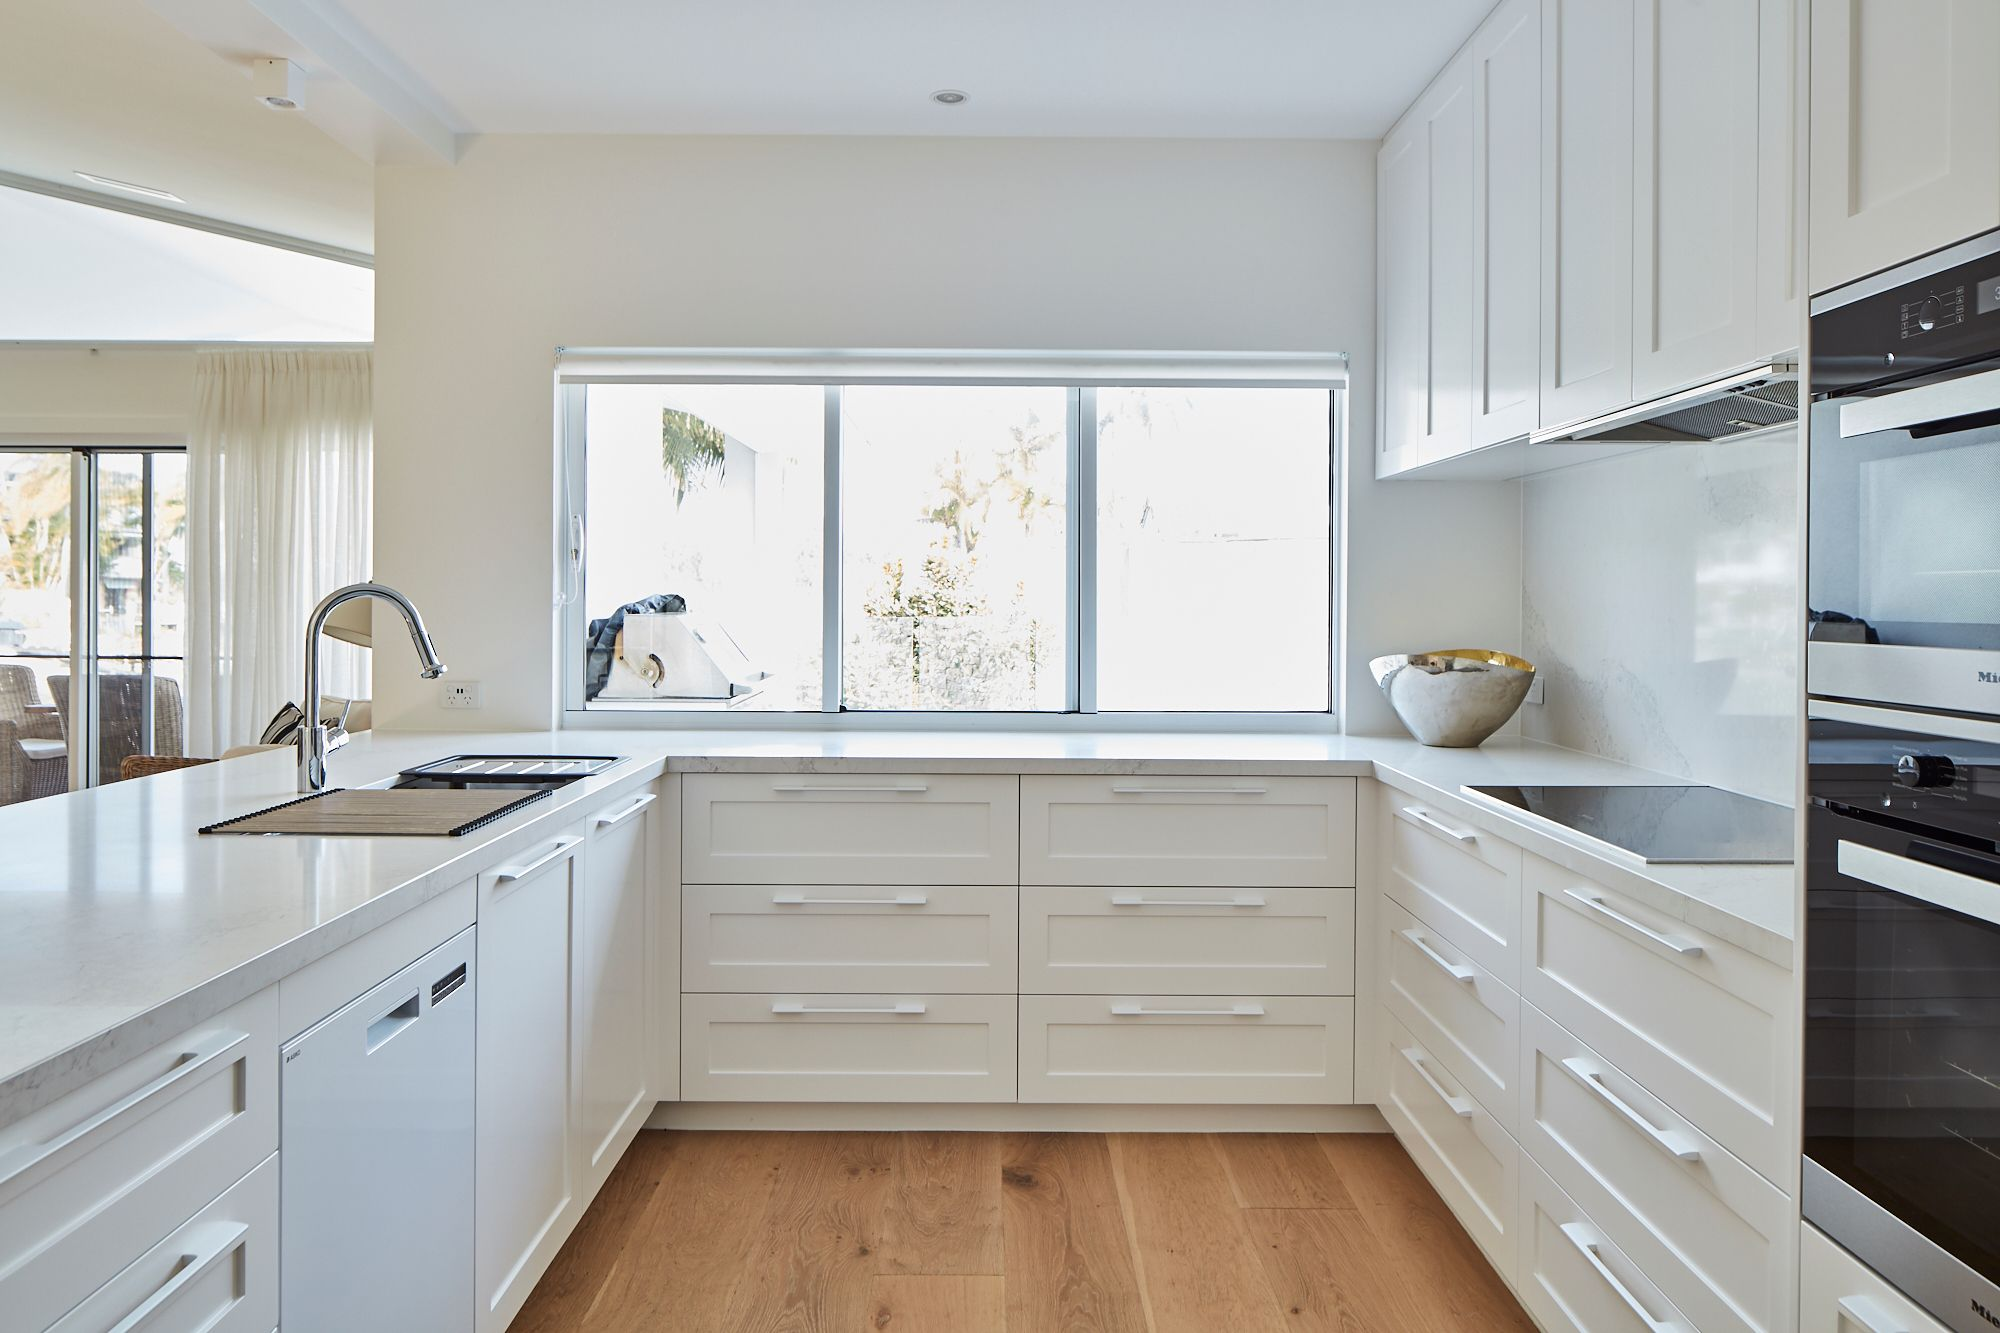 Beautiful Beach Home Kitchen At Noosa Featuring Caesarstone Calacatta Nuvo Lisang Design Creates A Relaxed Op Kitchen Design Open Plan Kitchen Home Kitchens